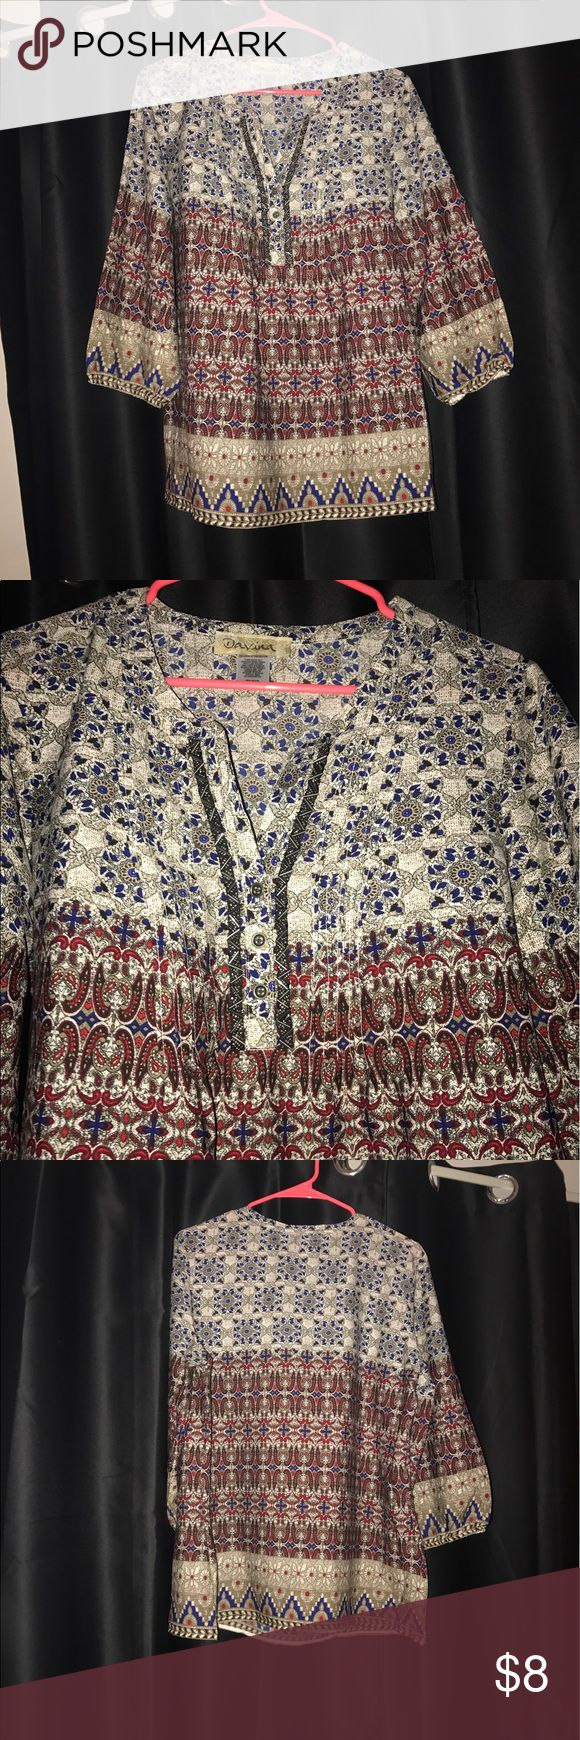 Aztec Blouse with beaded collar Never been worn! Women's size L, lightweight material Tops Blouses